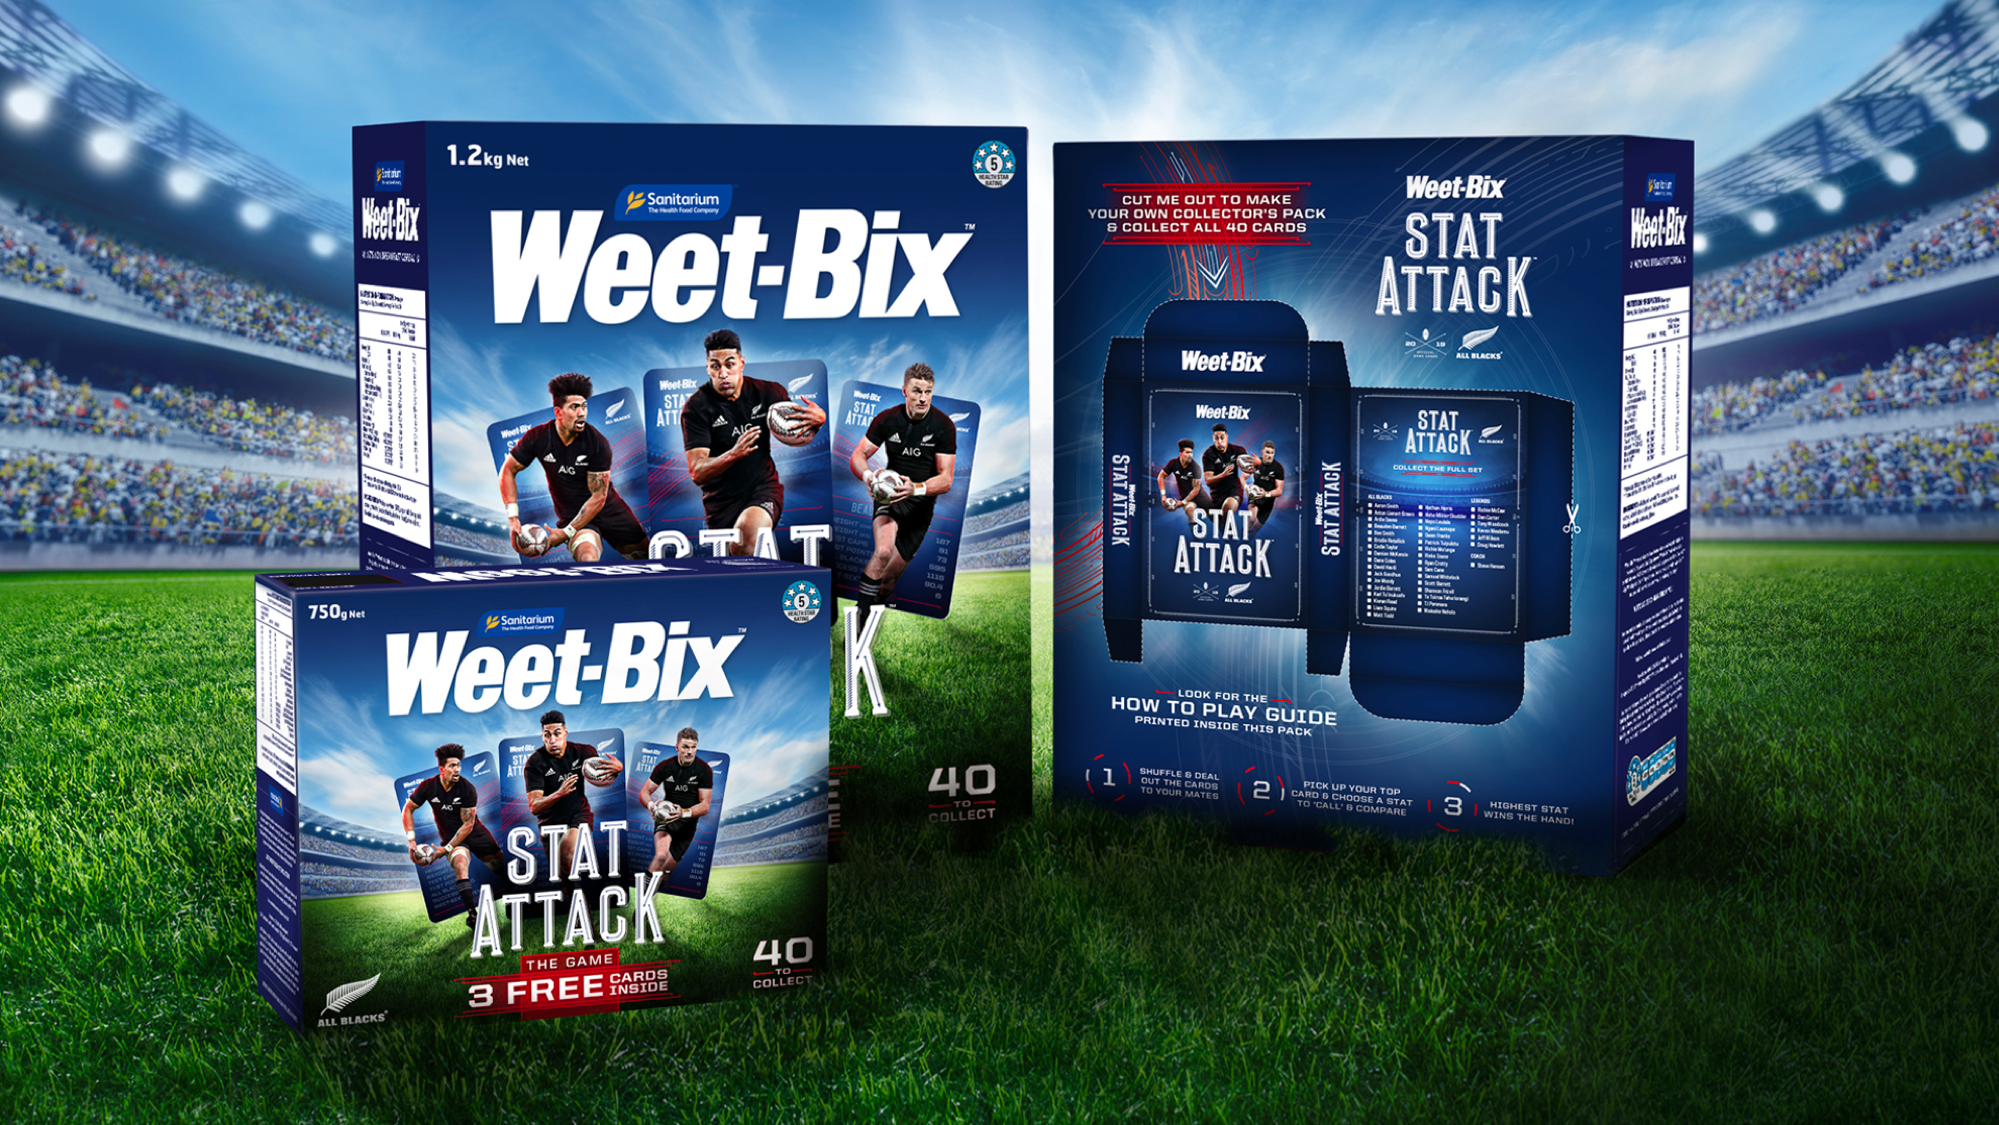 Sanitarium and Raydar bring back collectable card game sensation Weet-Bix Stat Attack